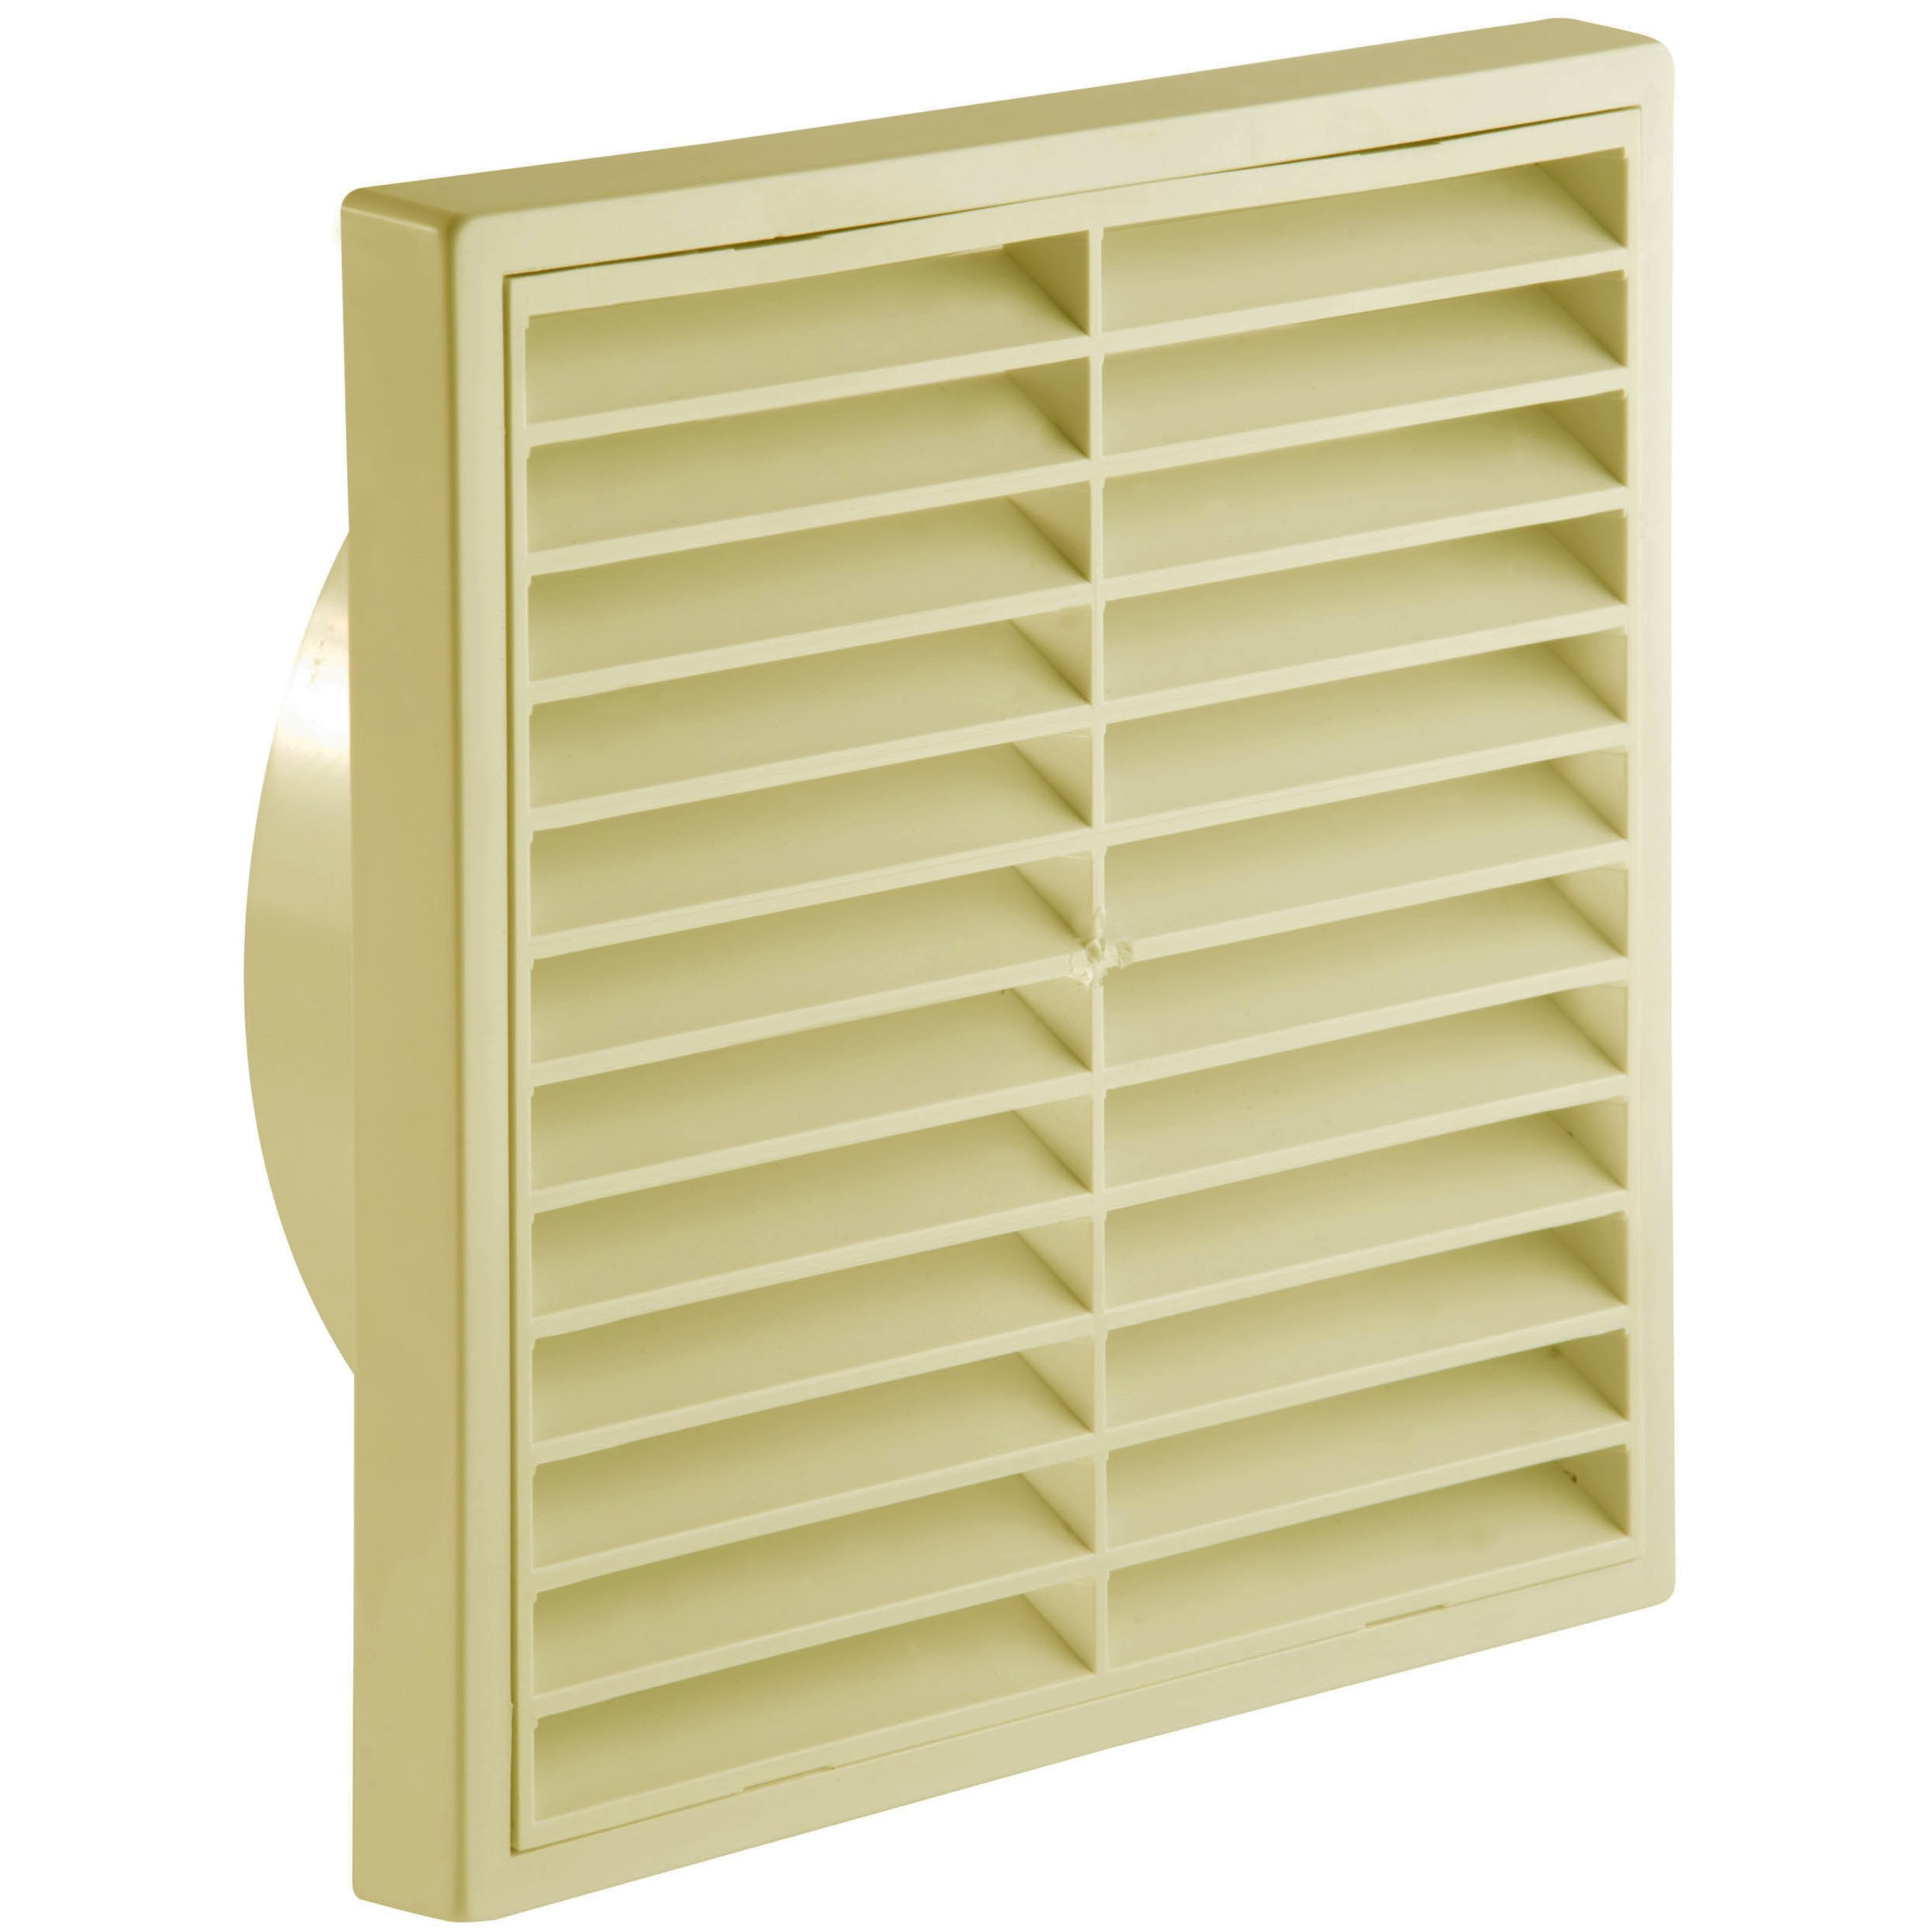 Manrose Round Ducting Pipe Fixed Grille Vent Outlet - Cream, 150mm